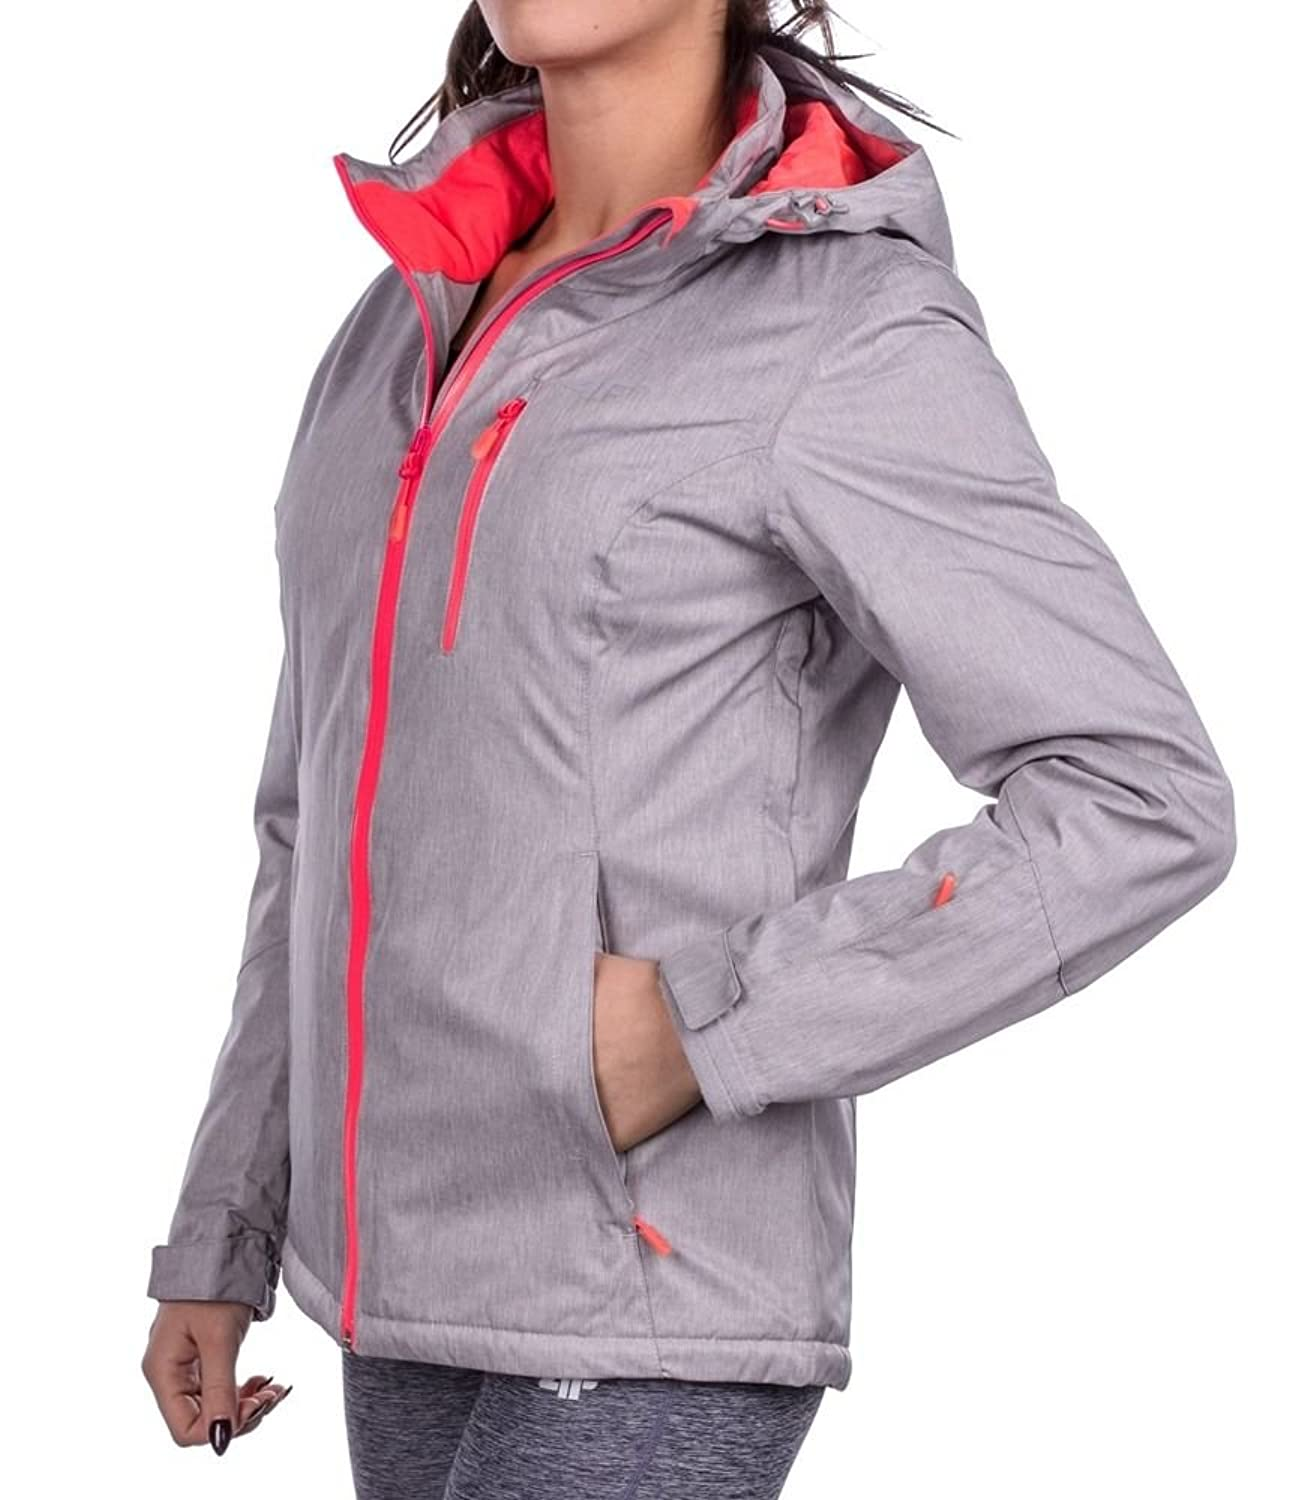 Impermeable De Ropa Impermeable Y Ropa Nieve ESWqR